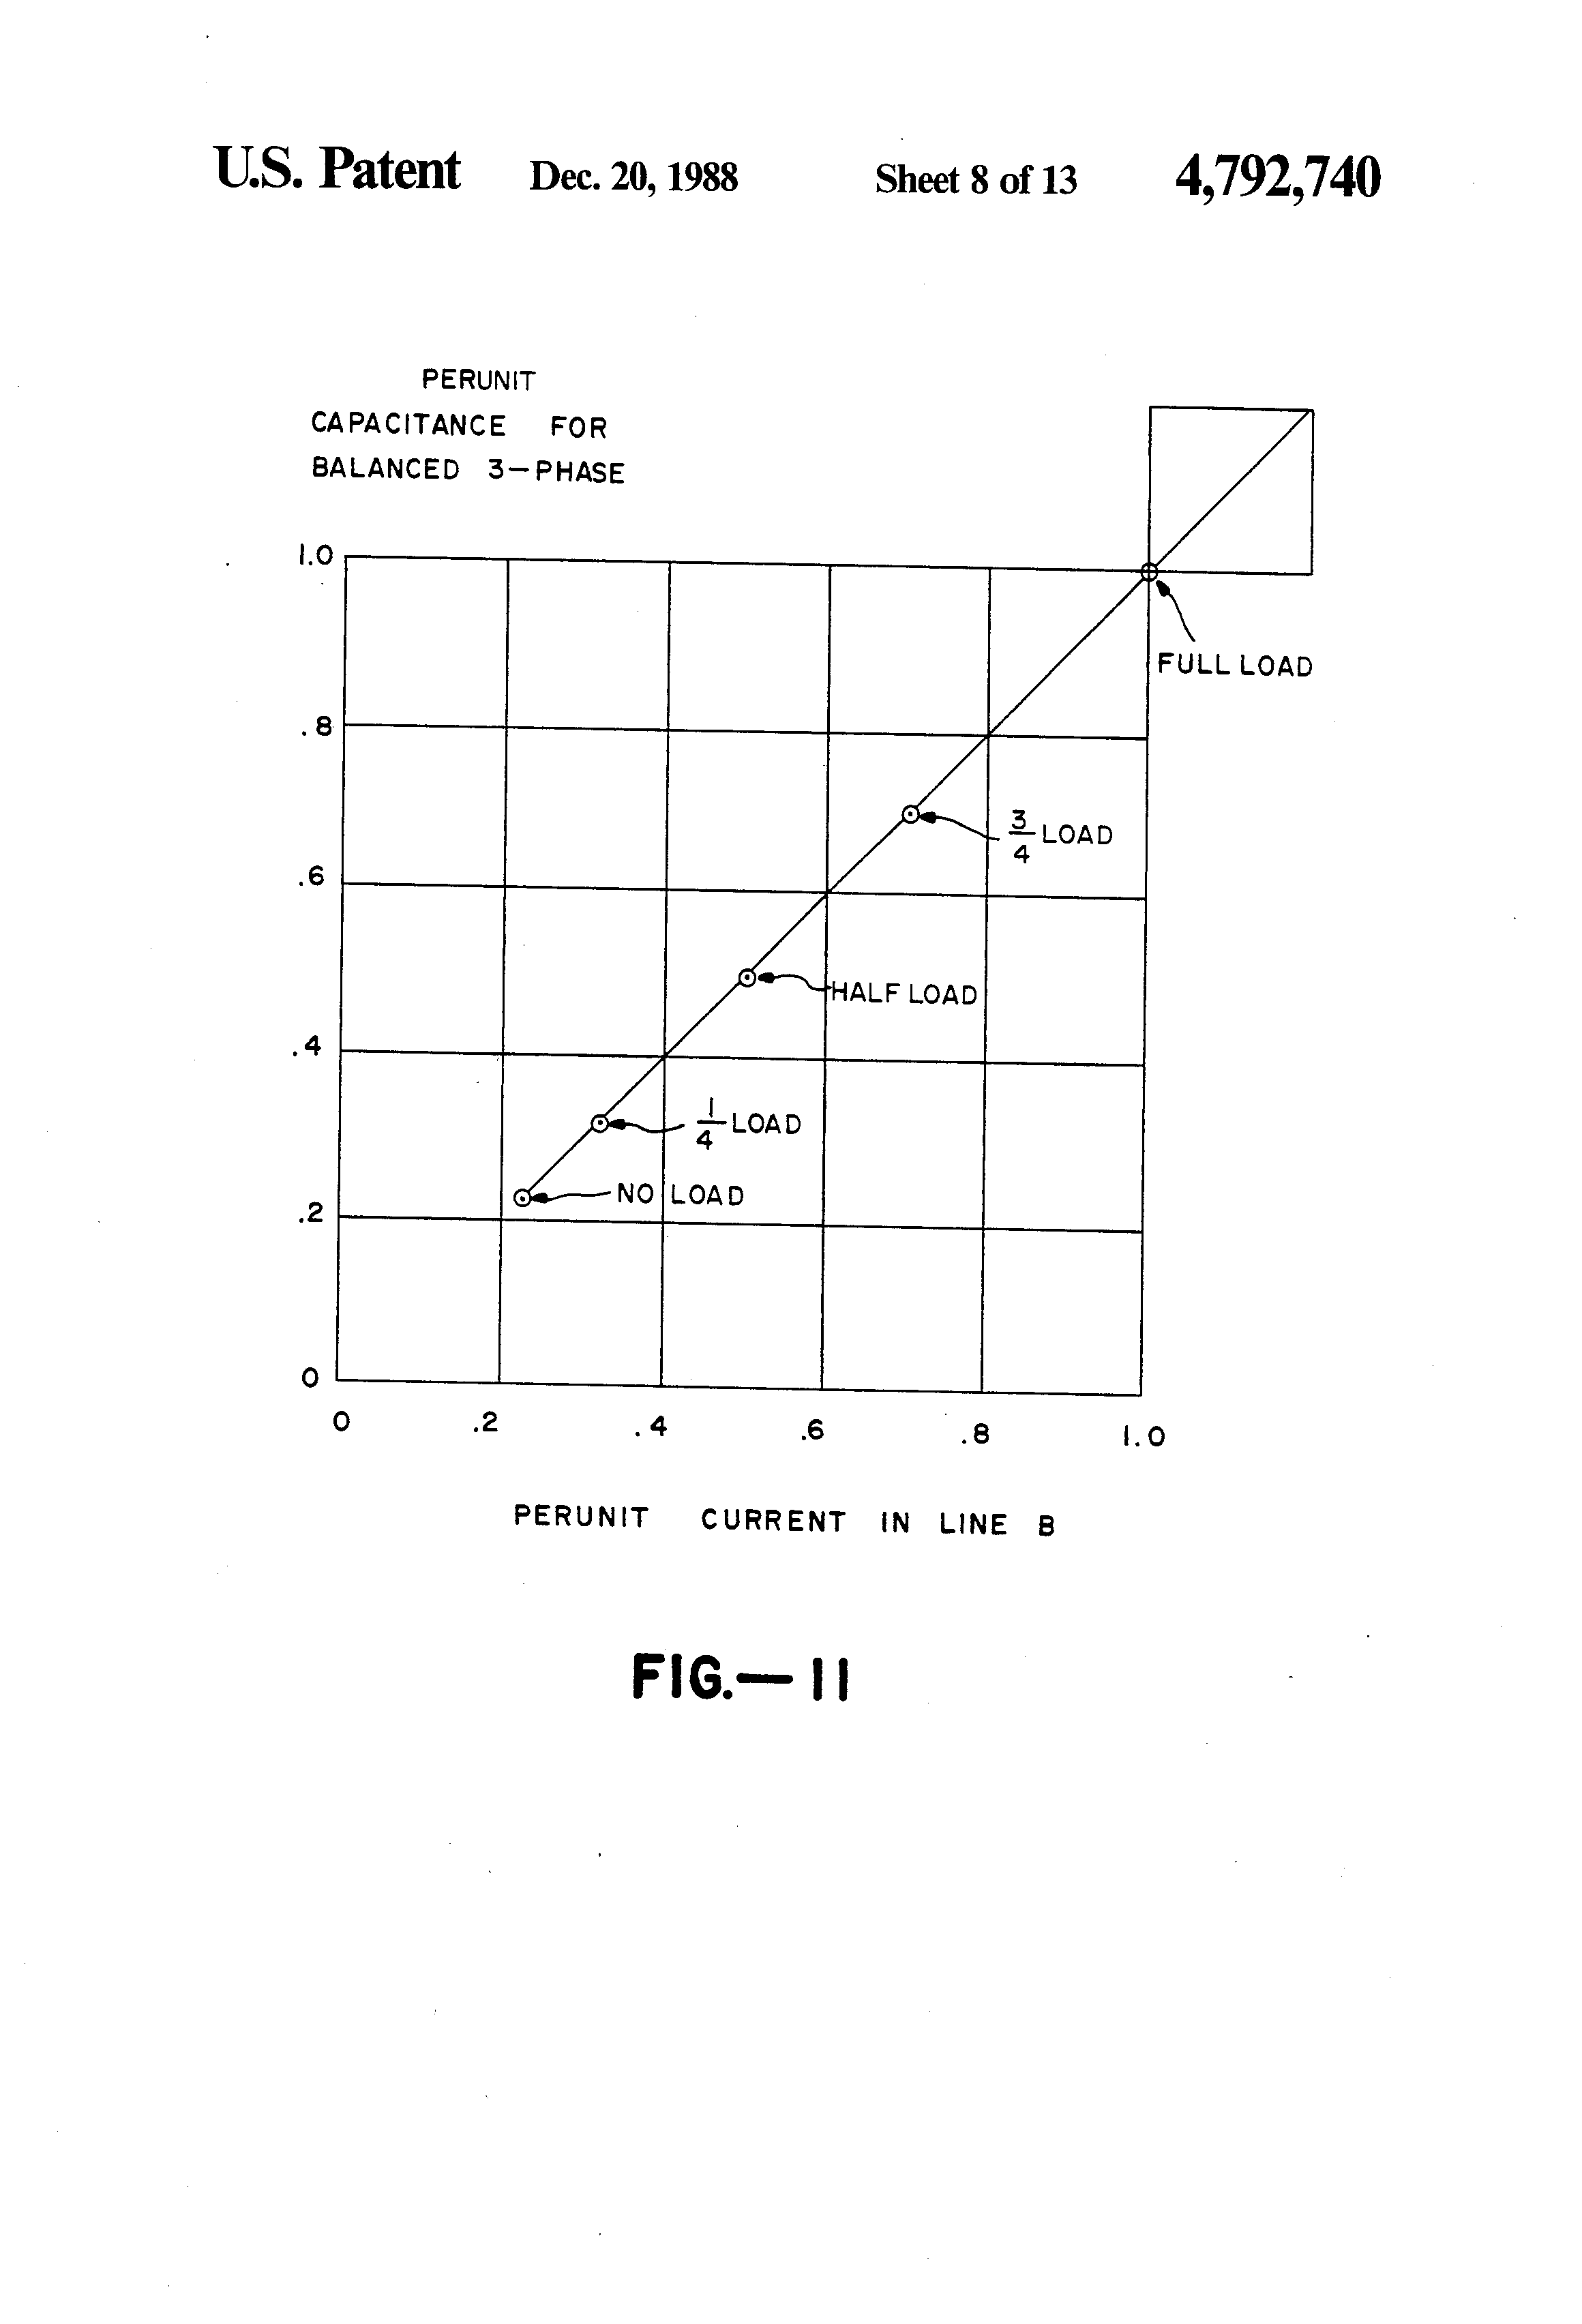 Wiring A 6 Lead 480 Volt Motor Modern Design Of Diagram 12 3 Phase Leads 37 Wire Connection 480v